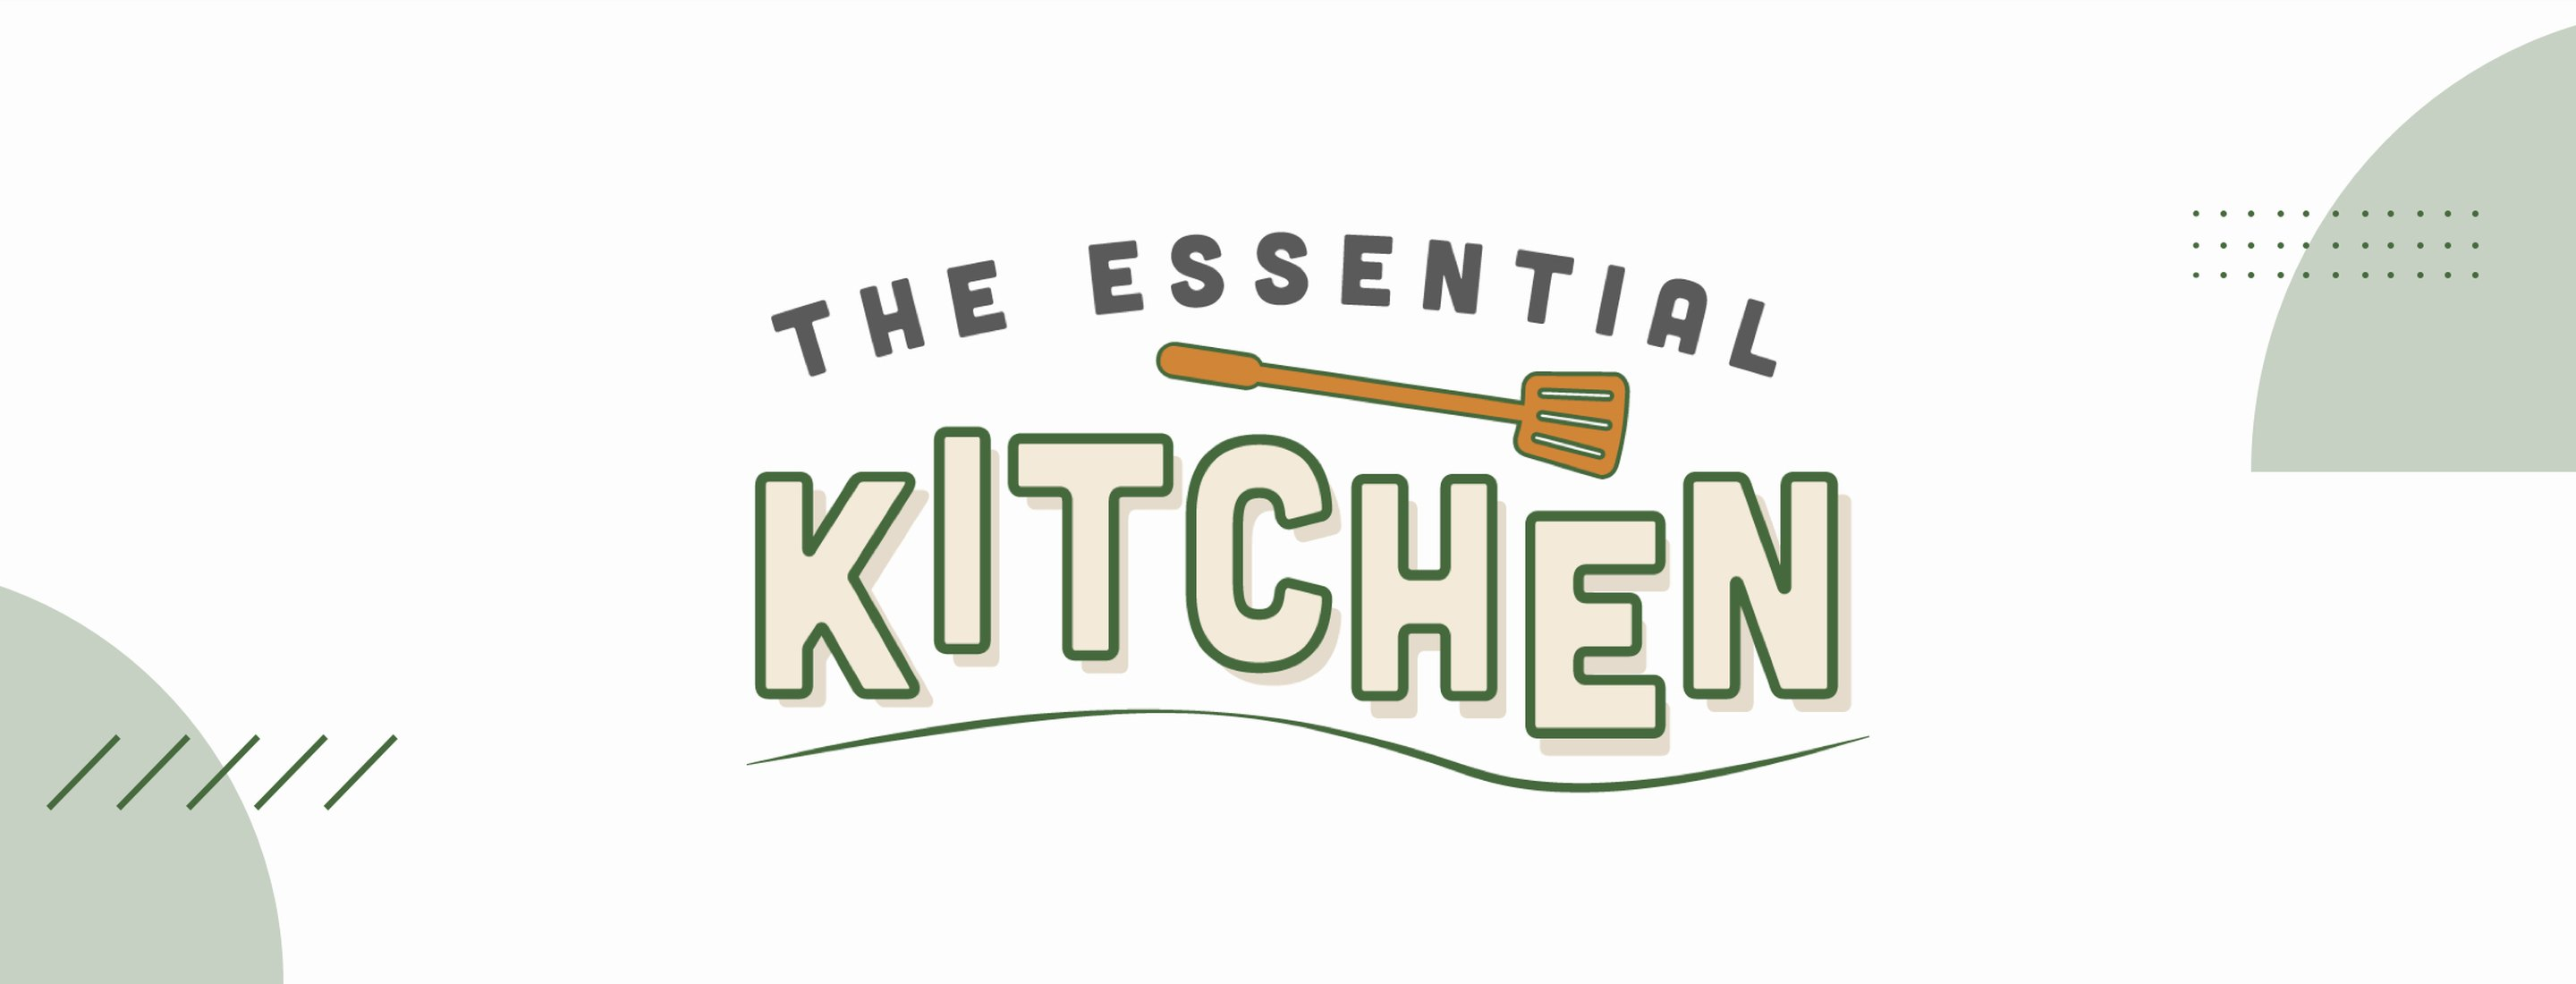 The Essential Kitchen logo with spatula